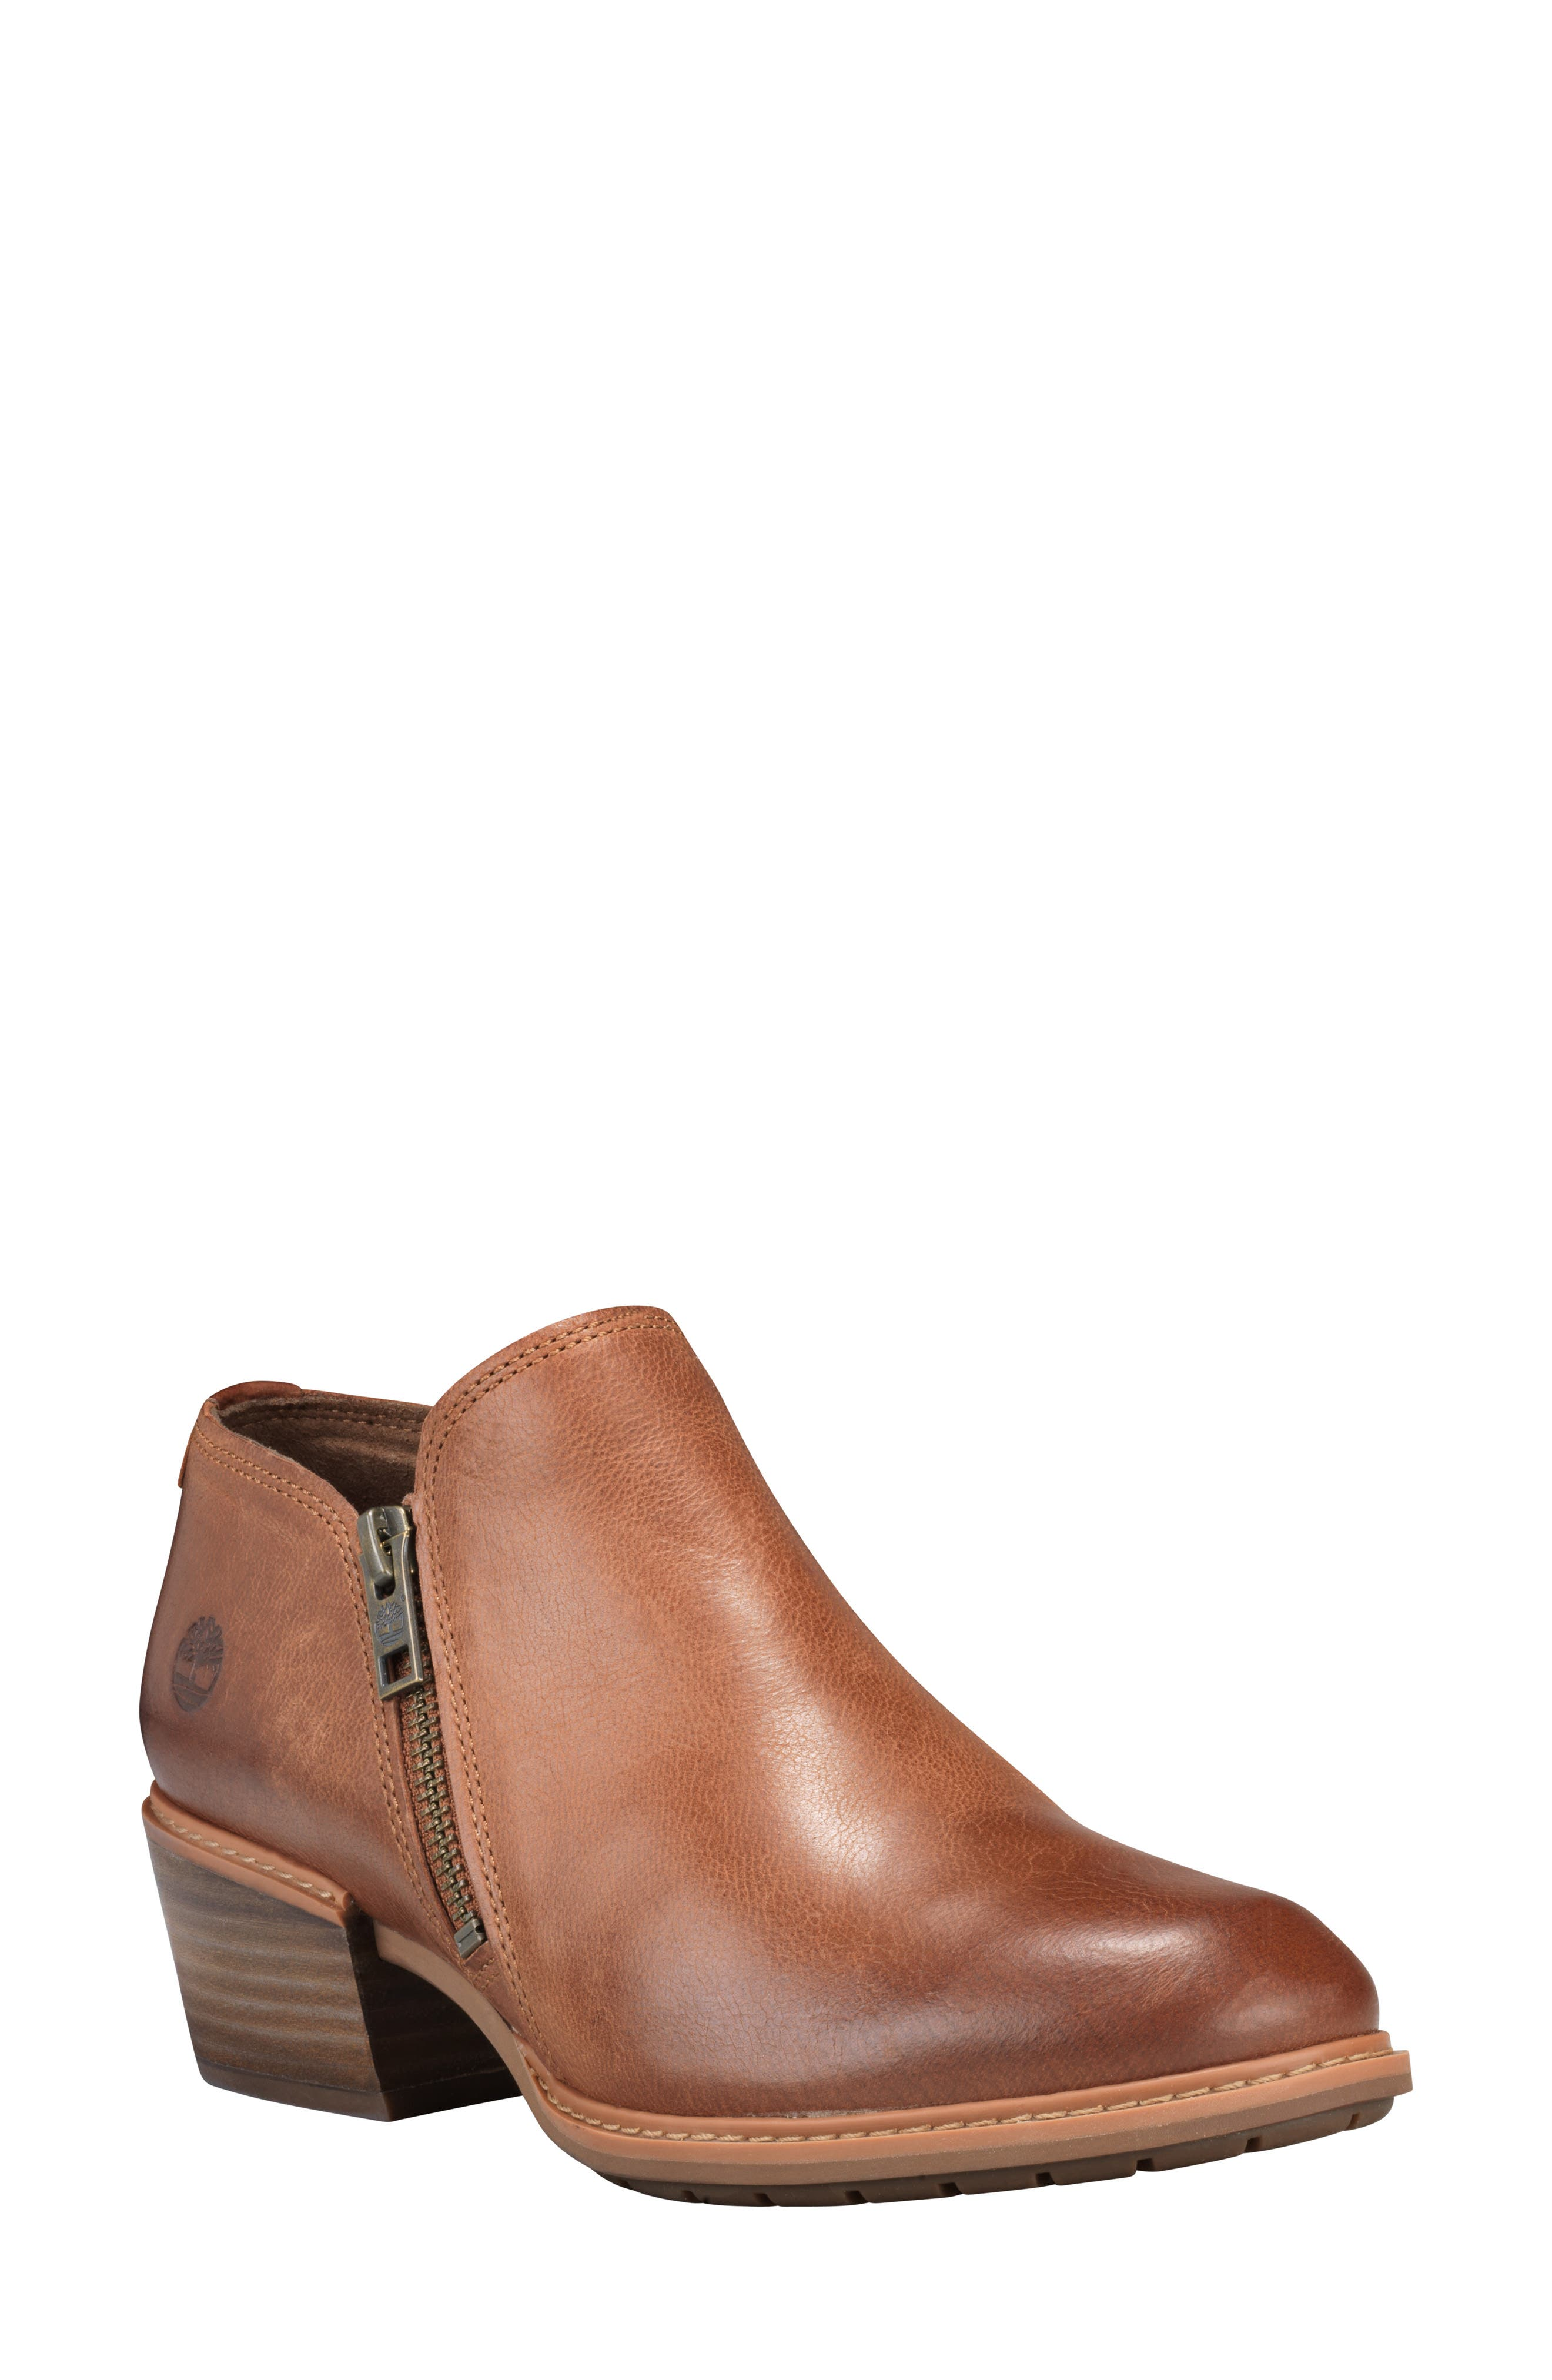 Timberland Sutherlin Bay Bootie, Brown